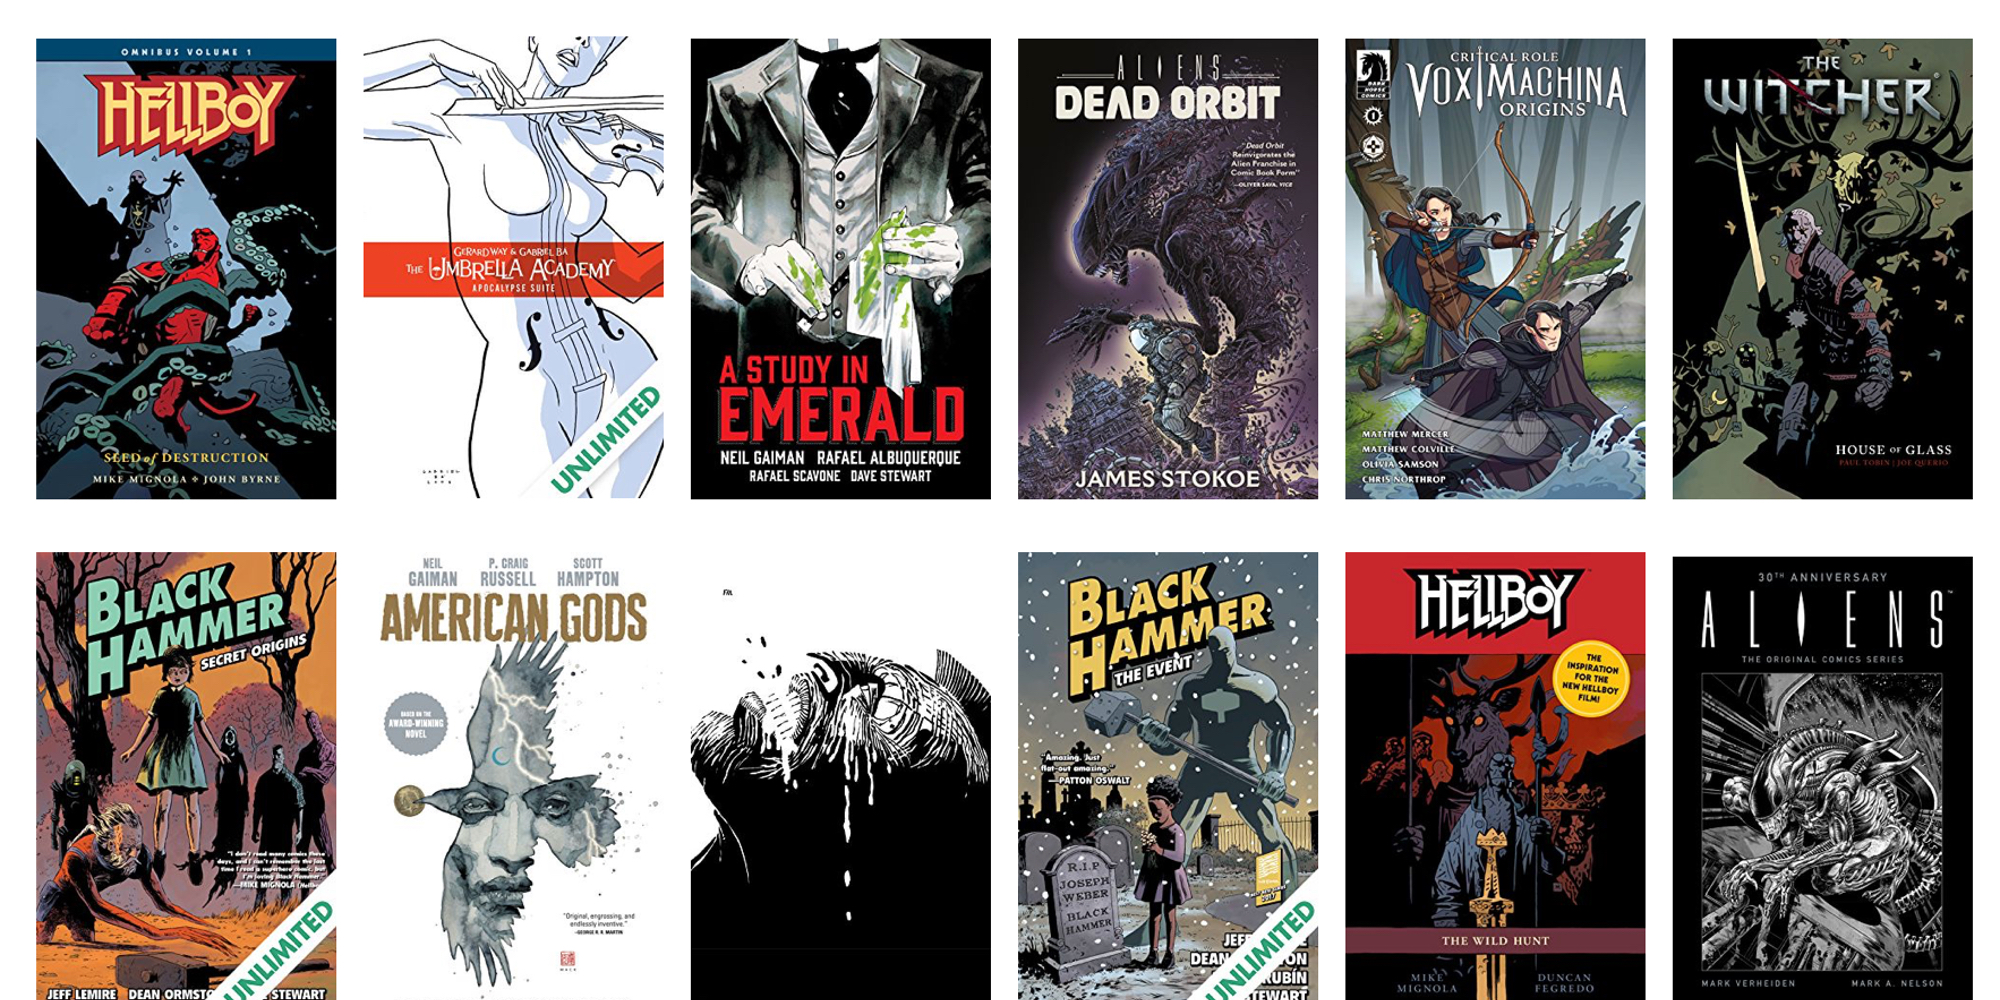 ComiXology slashes 50% off its entire selection of Dark Horse digital comics from under $1